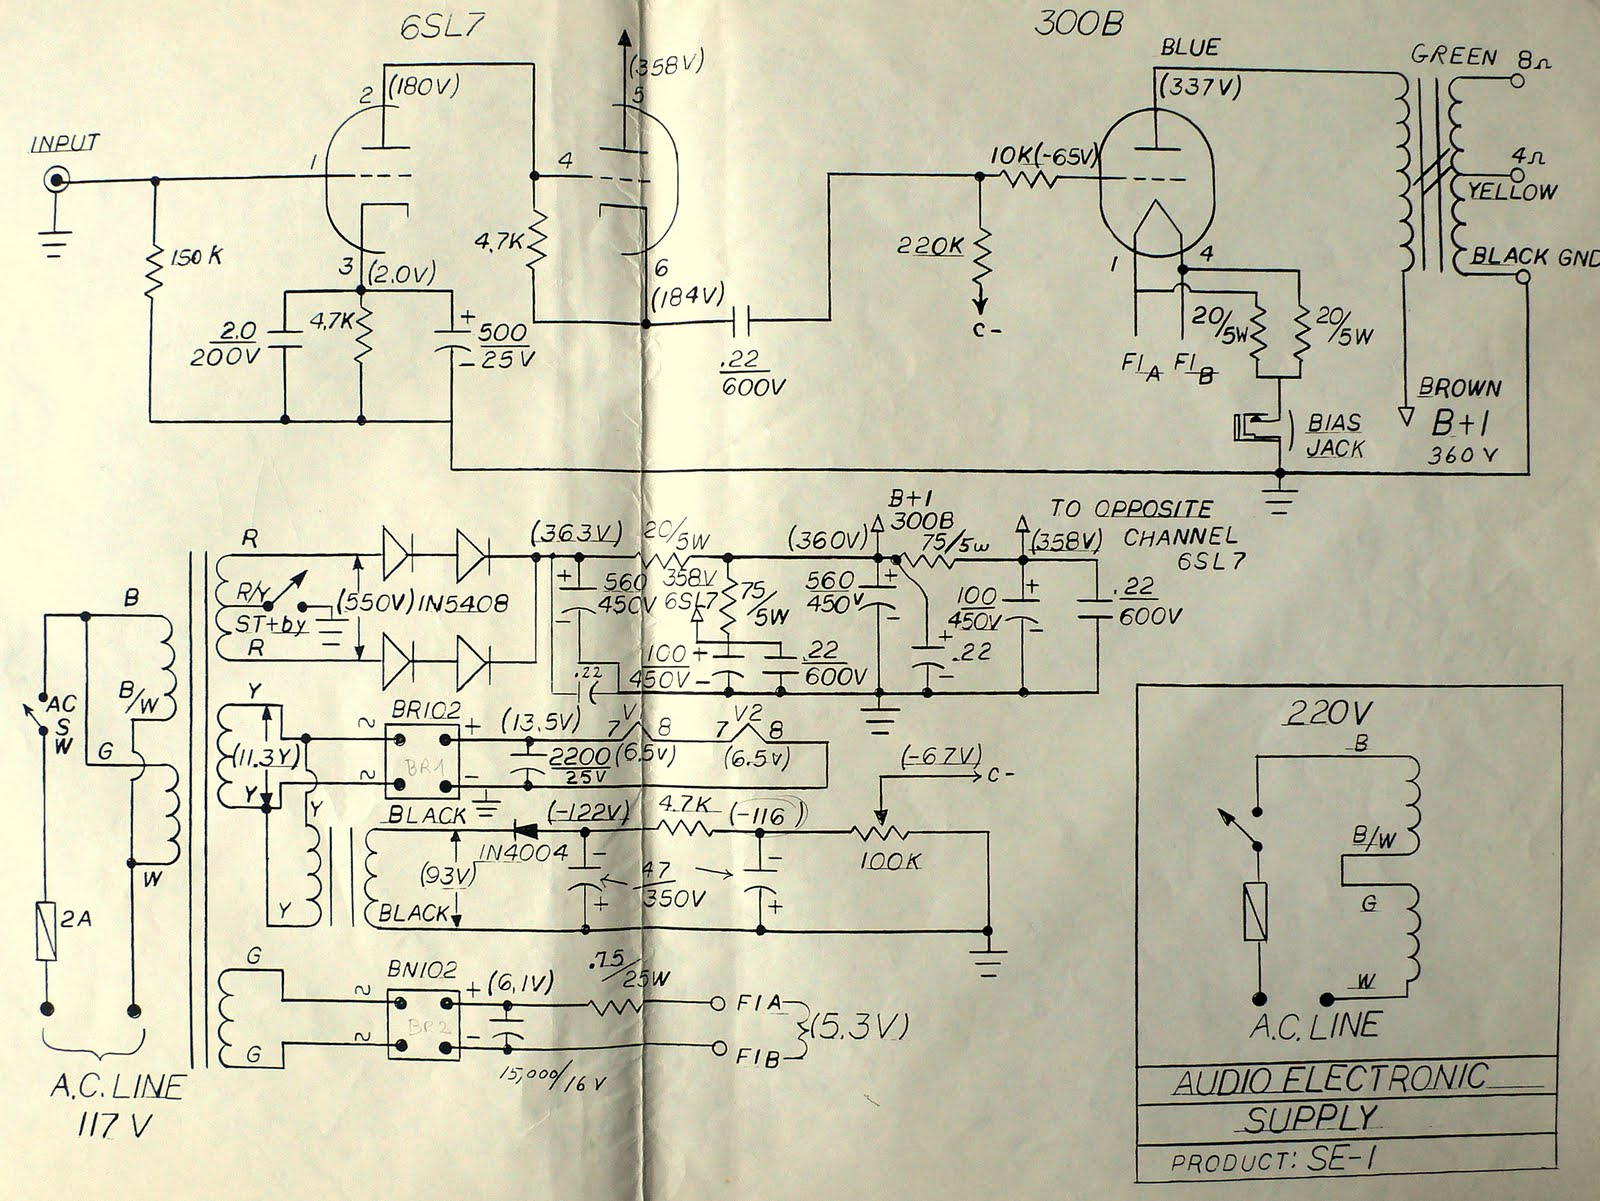 hight resolution of doctorjohn cheaptubeaudio audio reviews and more aes se 1 schematic and info